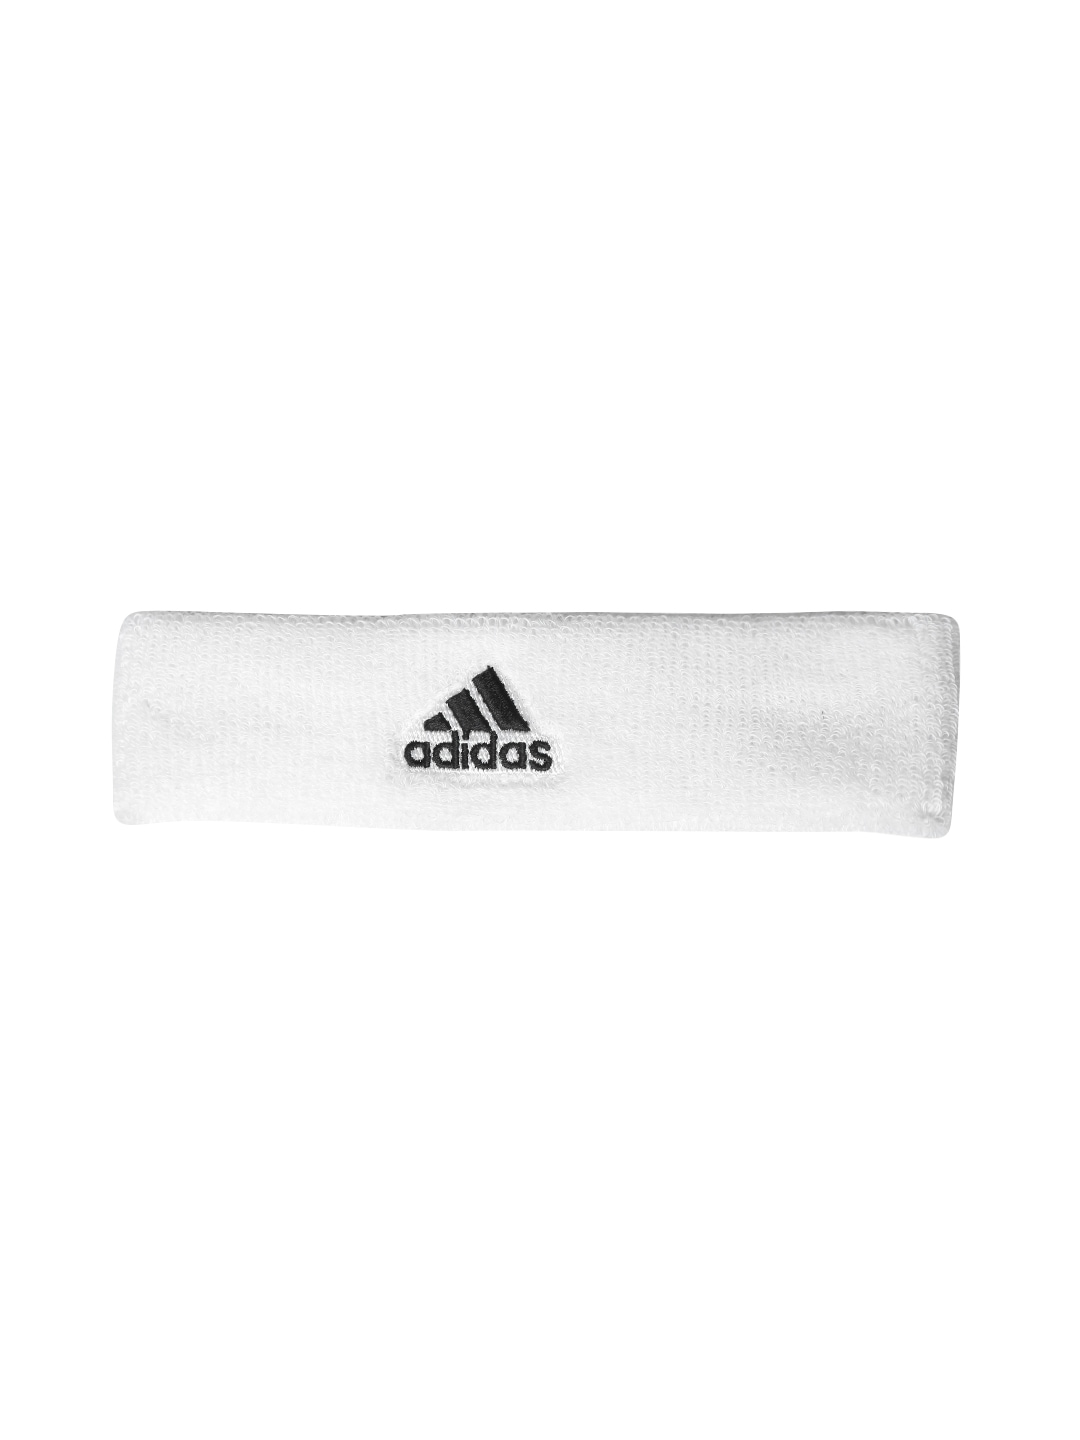 Adidas Headband Messenger Bags - Buy Adidas Headband Messenger Bags online  in India 191ae02b27046